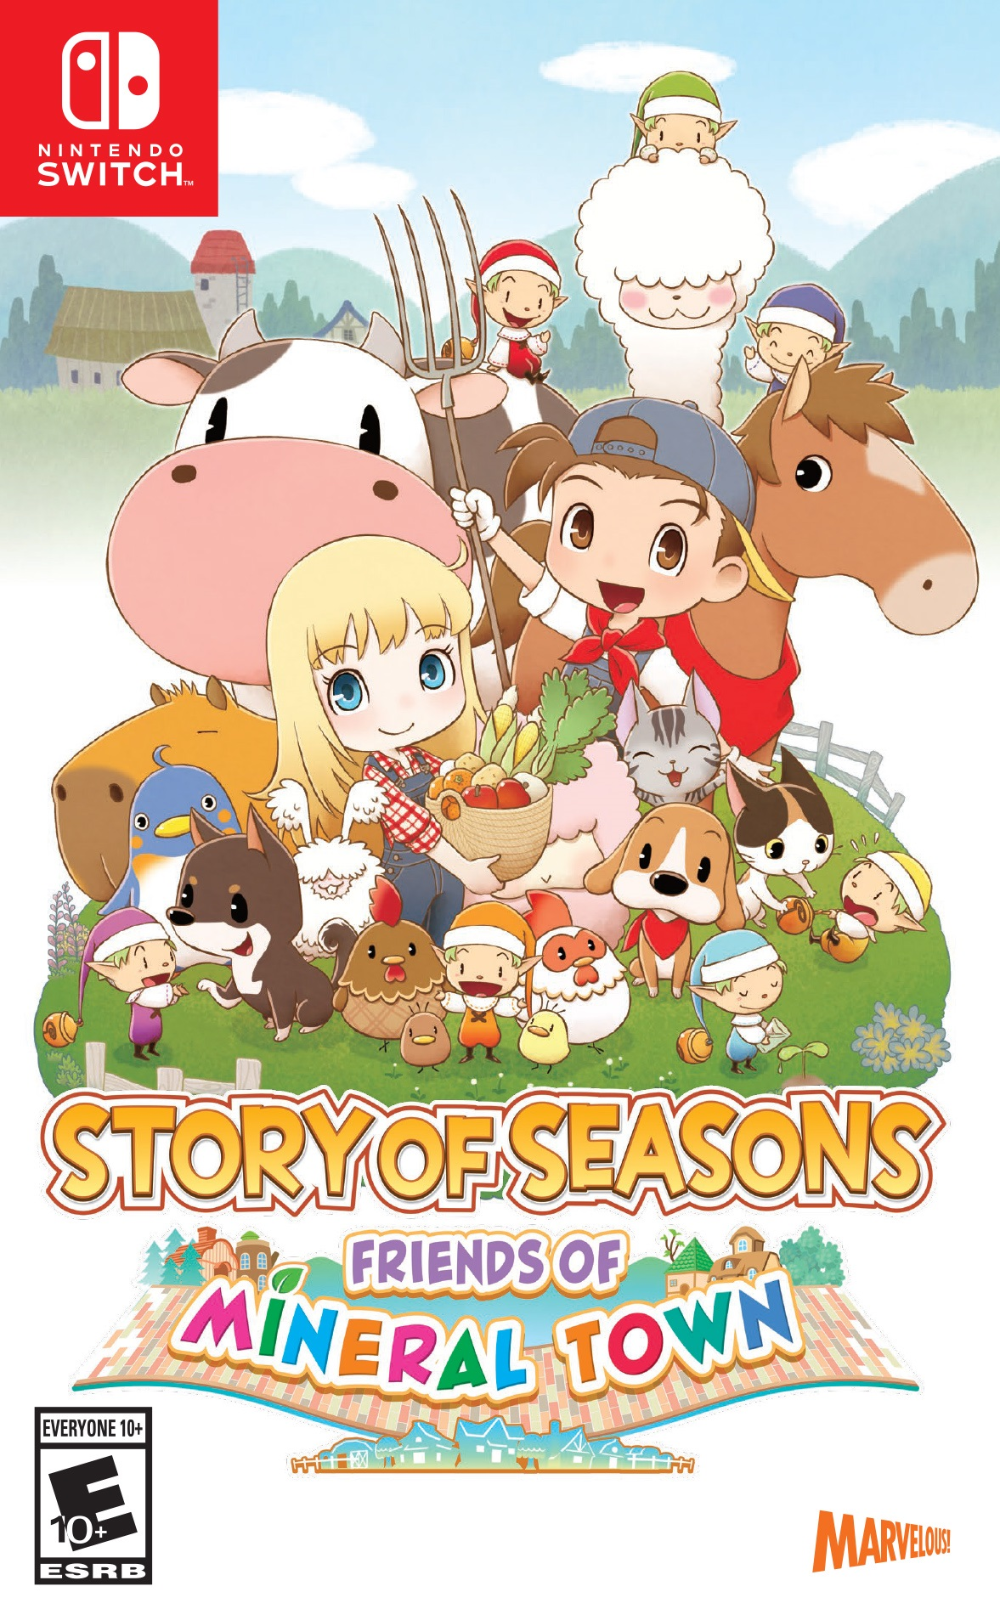 Story Of Seasons Friends Of Mineral Town Review In 2020 Nintendo Switch Nintendo Nintendo Switch Games